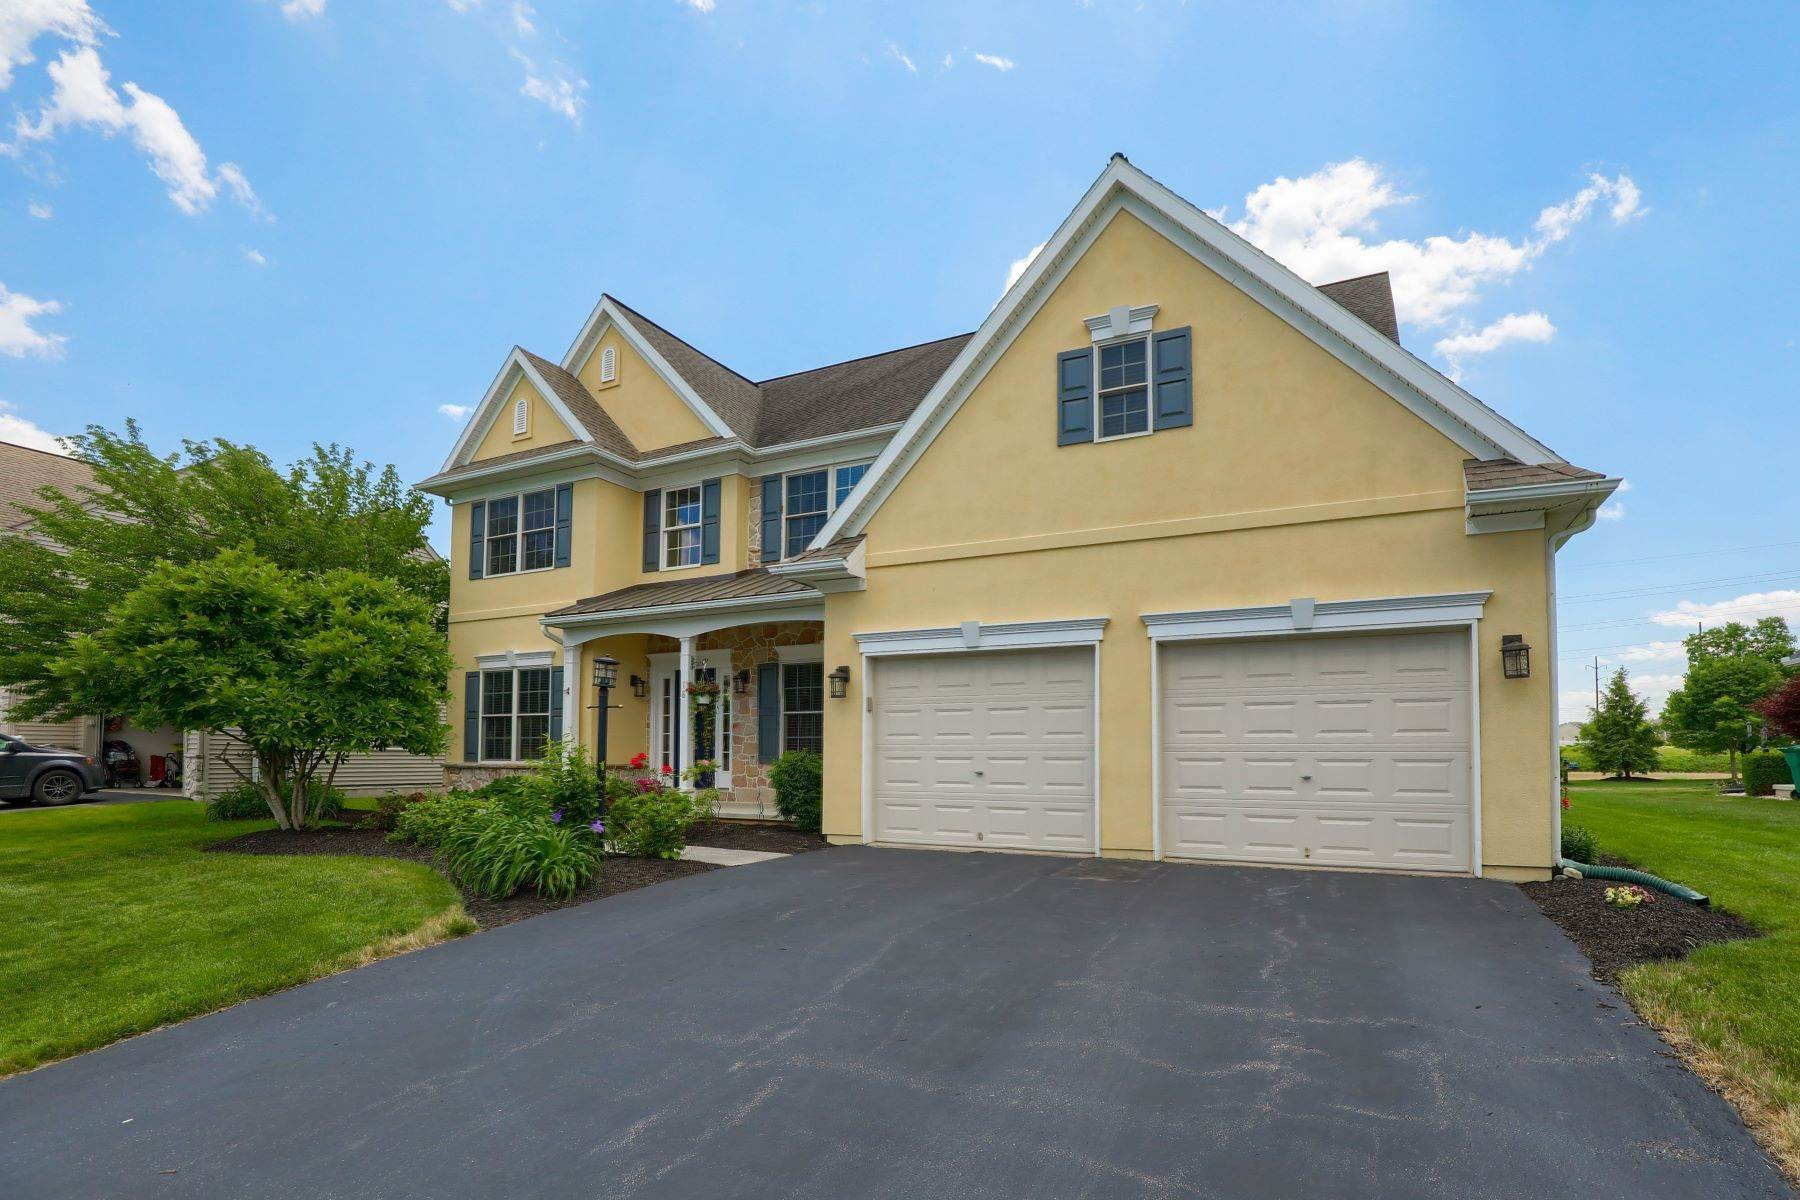 44. Single Family Homes for Sale at 18 Jared Place Lititz, Pennsylvania 17543 United States